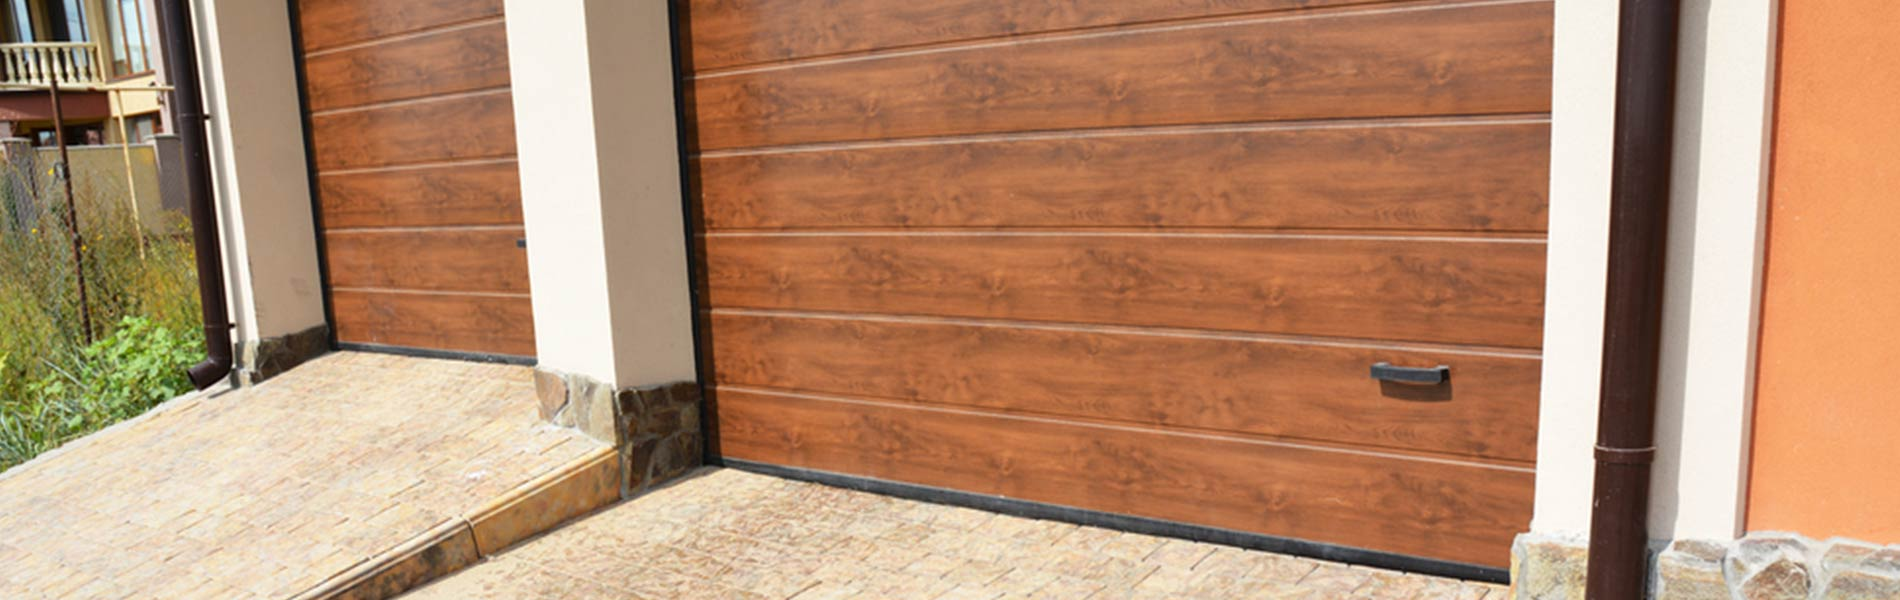 Express Garage Doors Cheap Garage Door Company Near Me